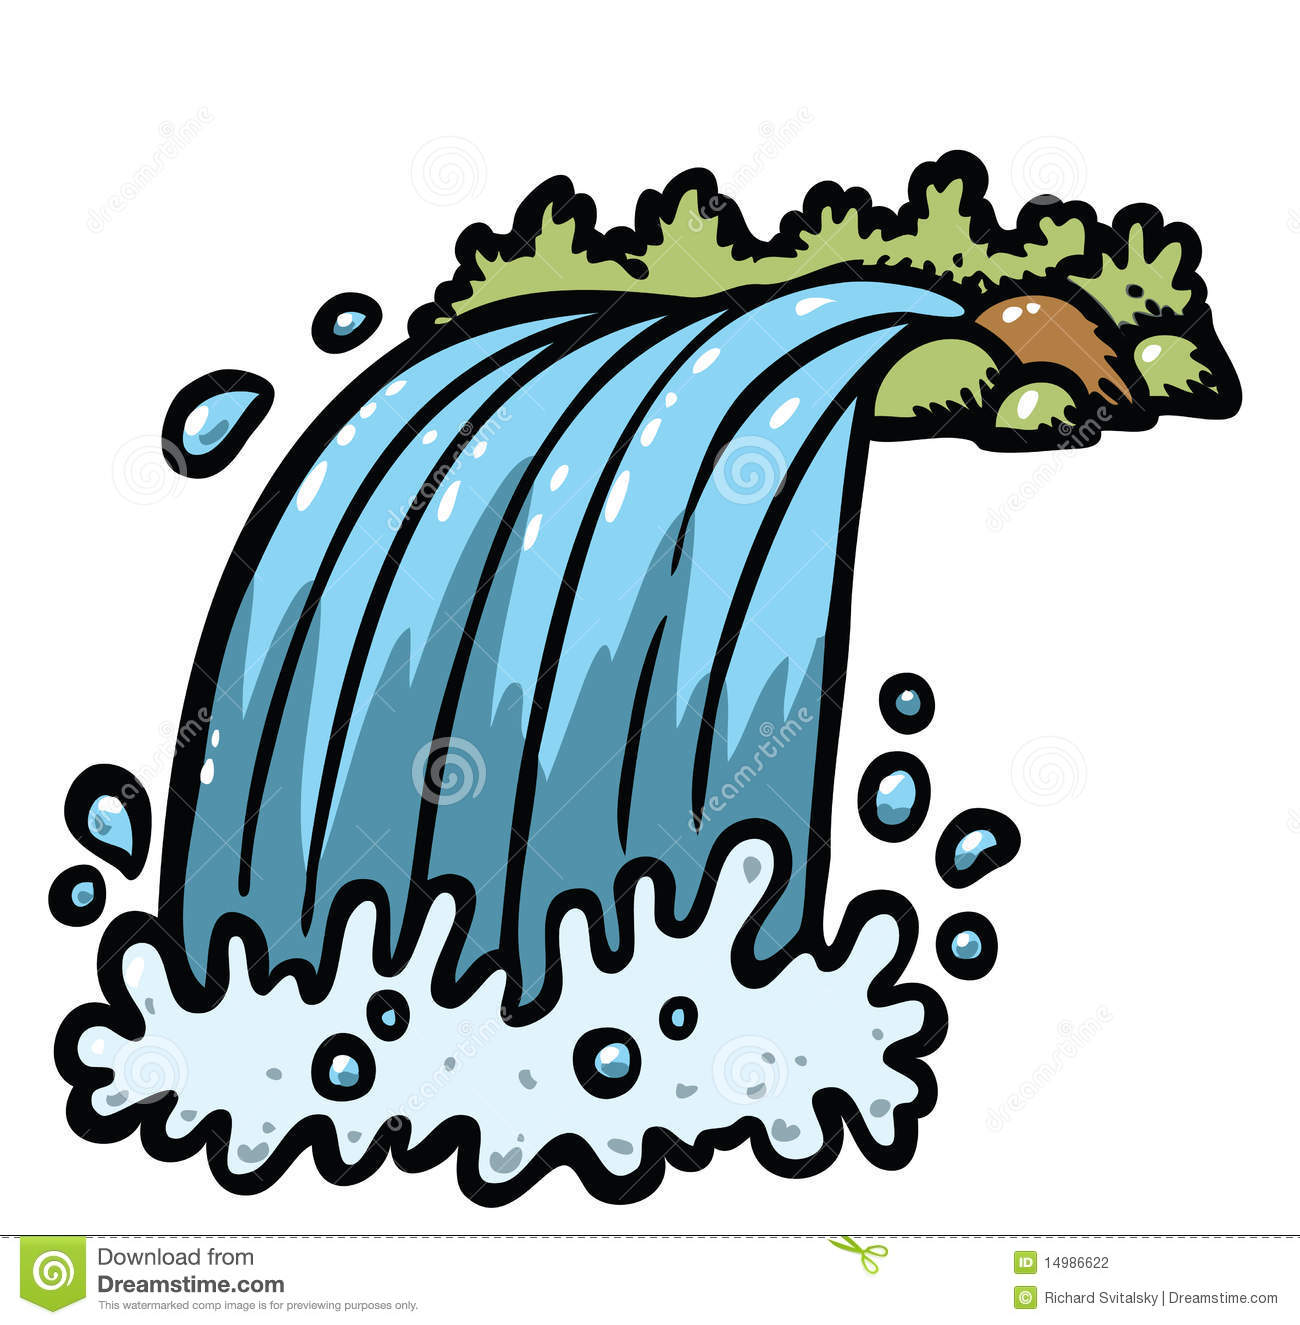 Wasserfall clipart #17, Download drawings